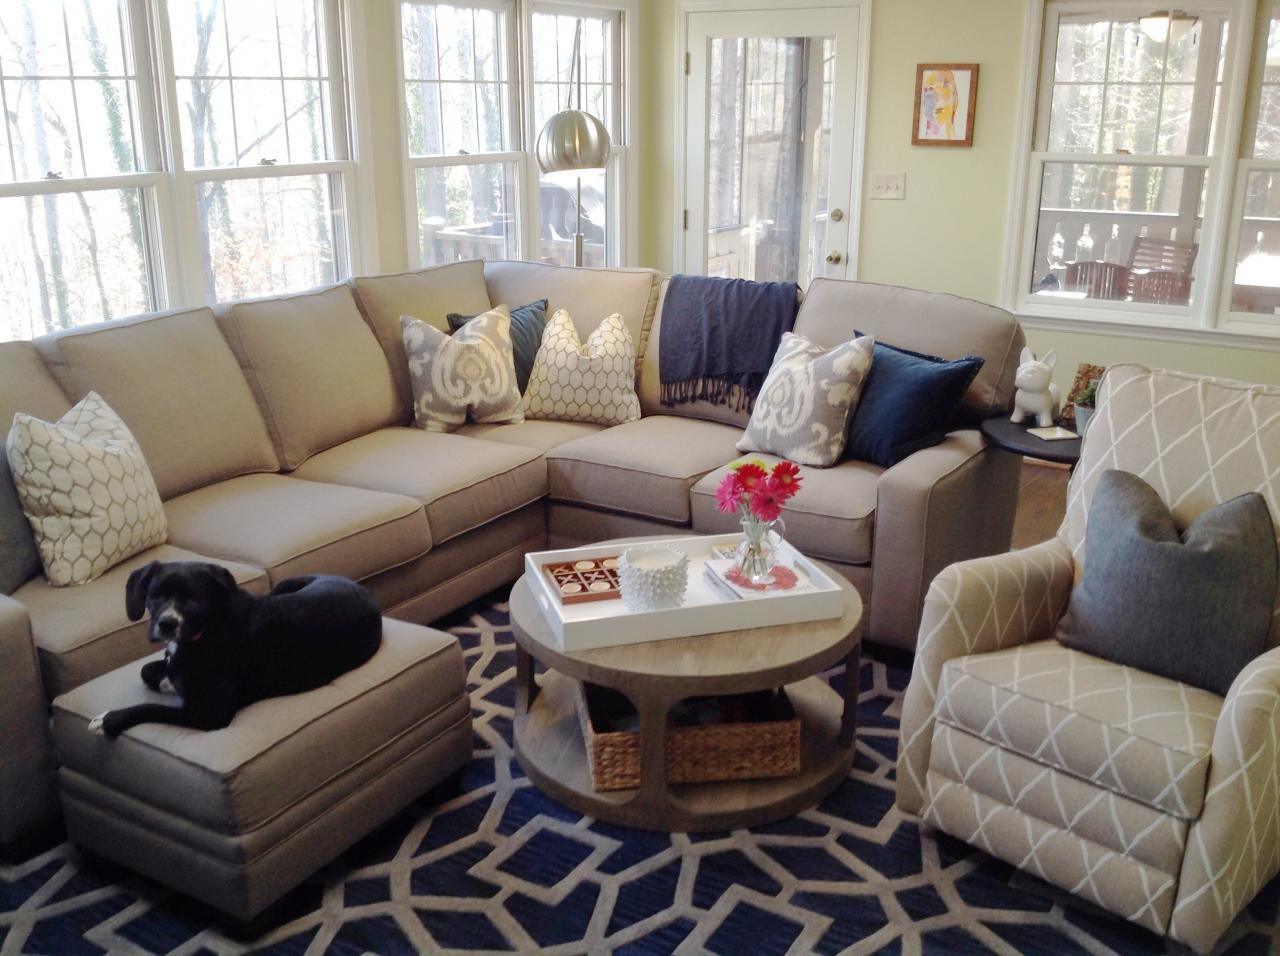 King hickory winston sectional and comfort design randolph for Comfort living furniture